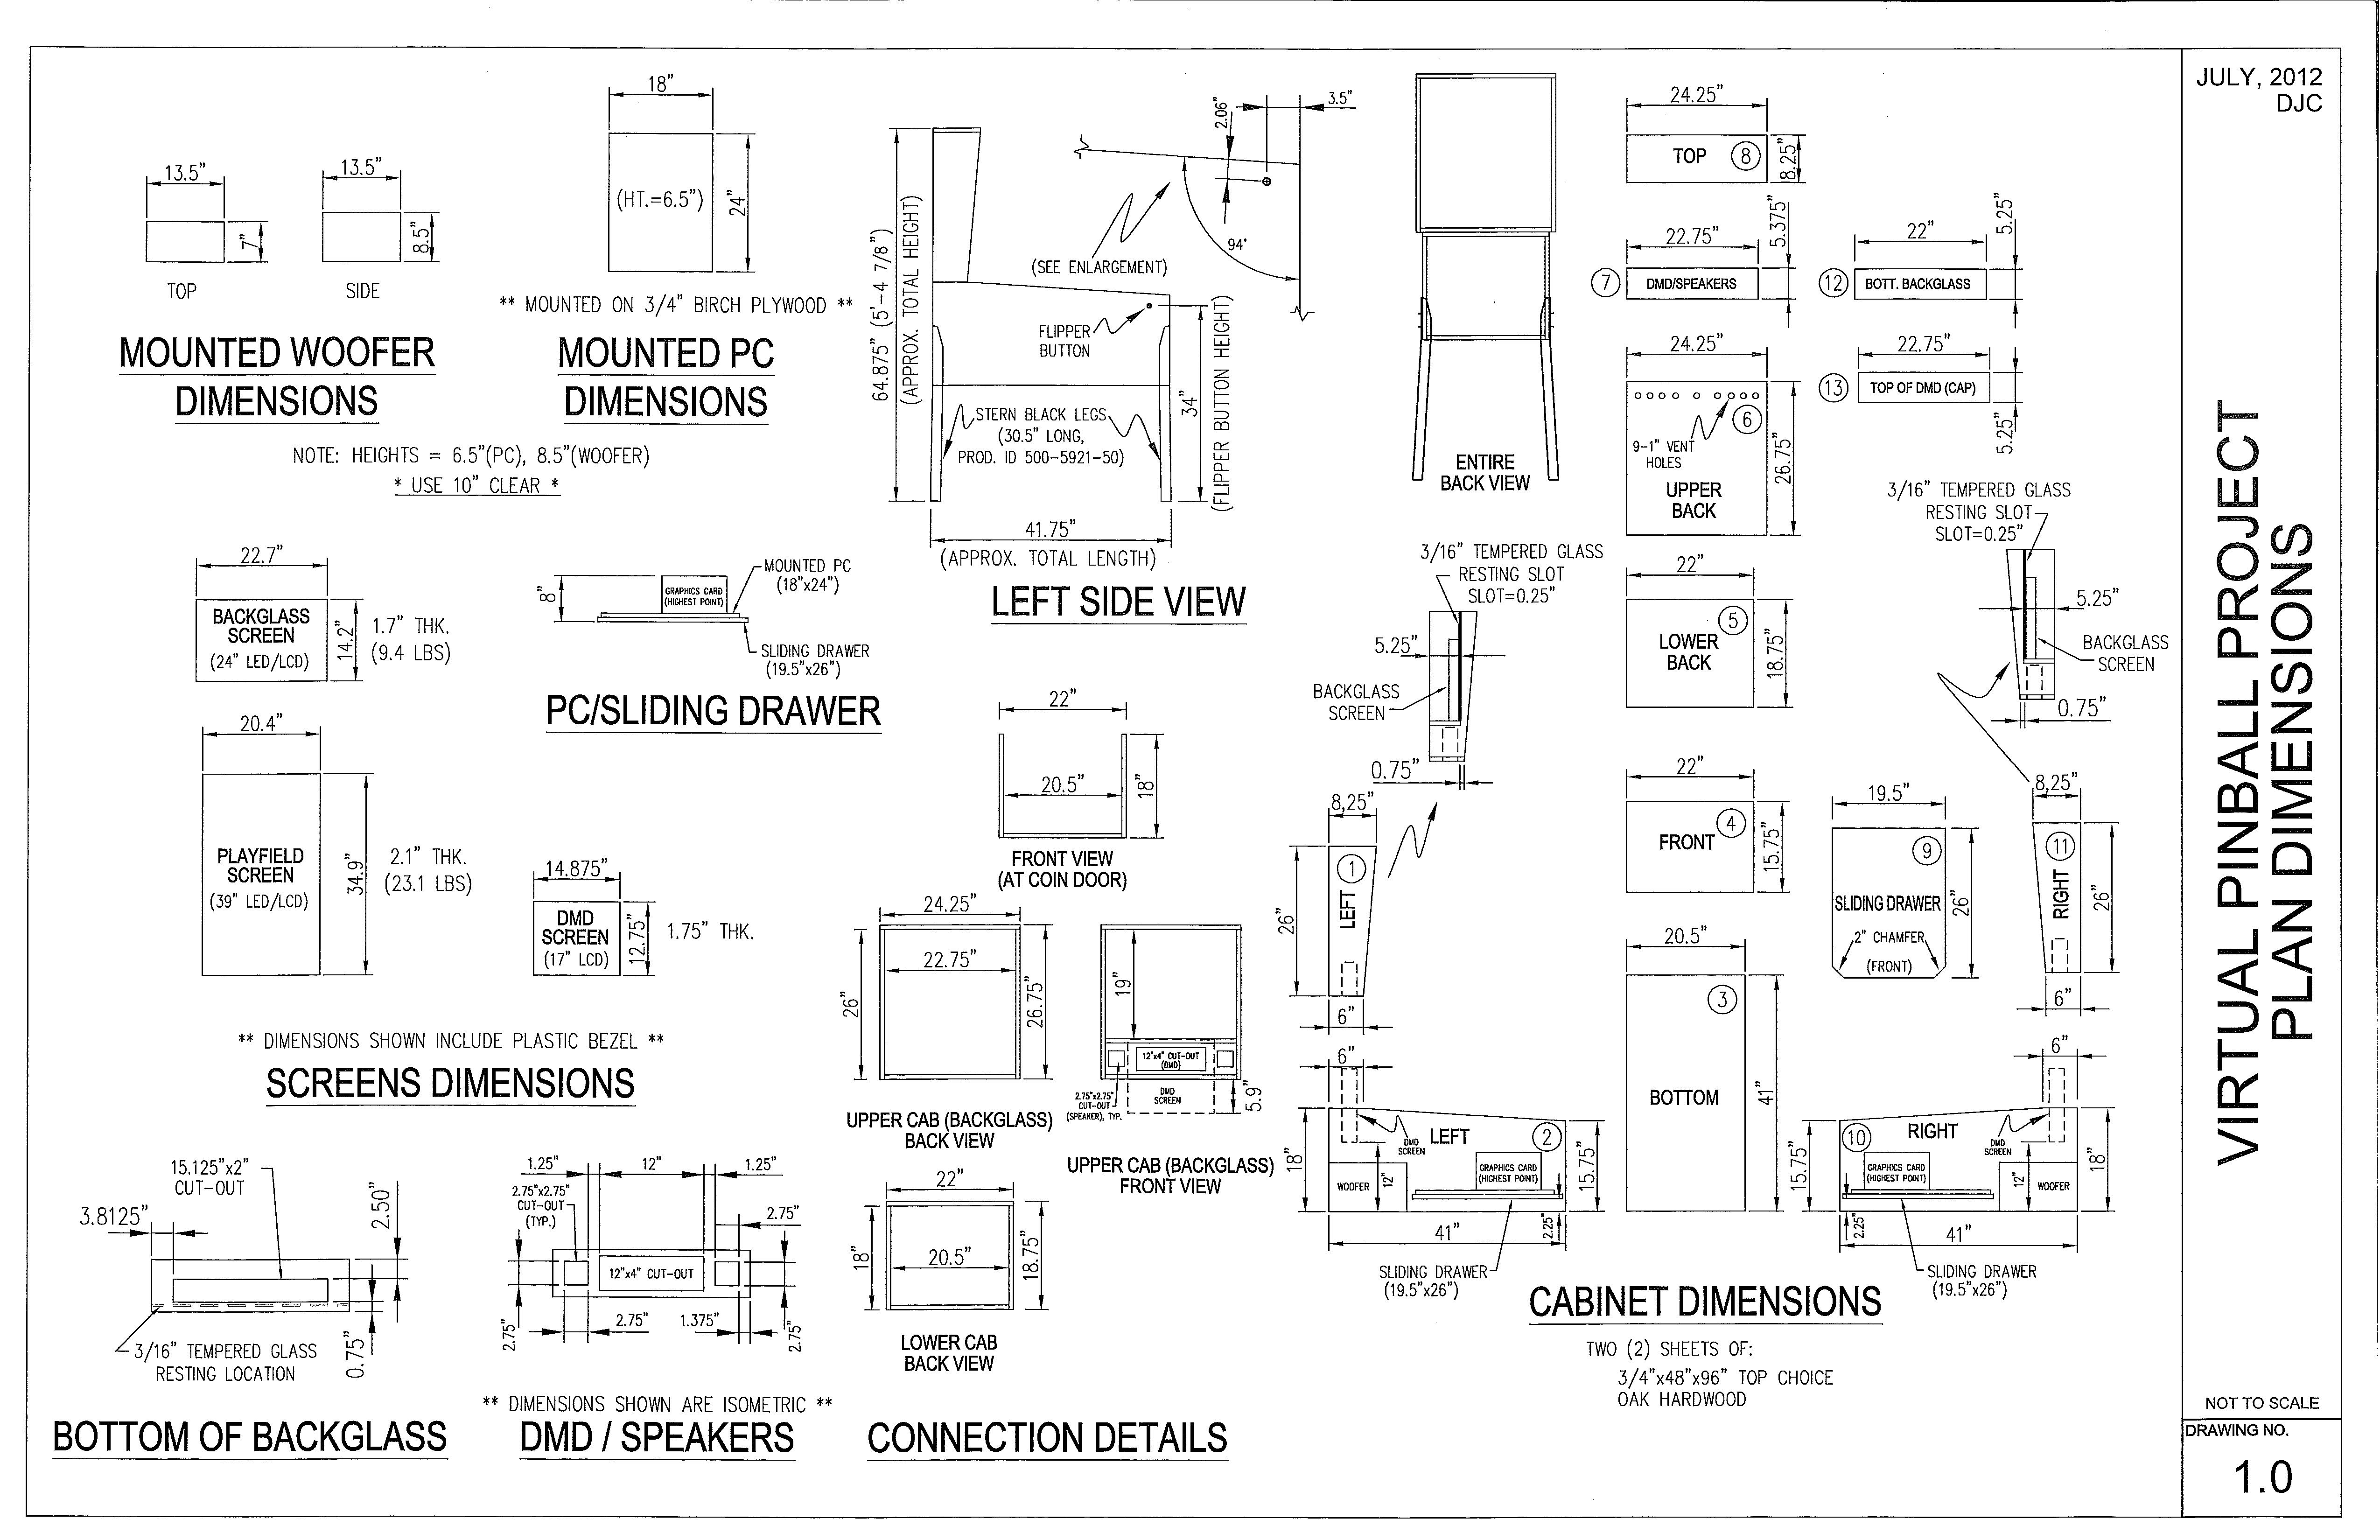 kitchen cabinet plans Diy cabinets plans Bathroom Wall Kitchen Cabinet Basic Carcass Plan Free easy tutorial from Ana Utility room or garage with these free woodworking plans